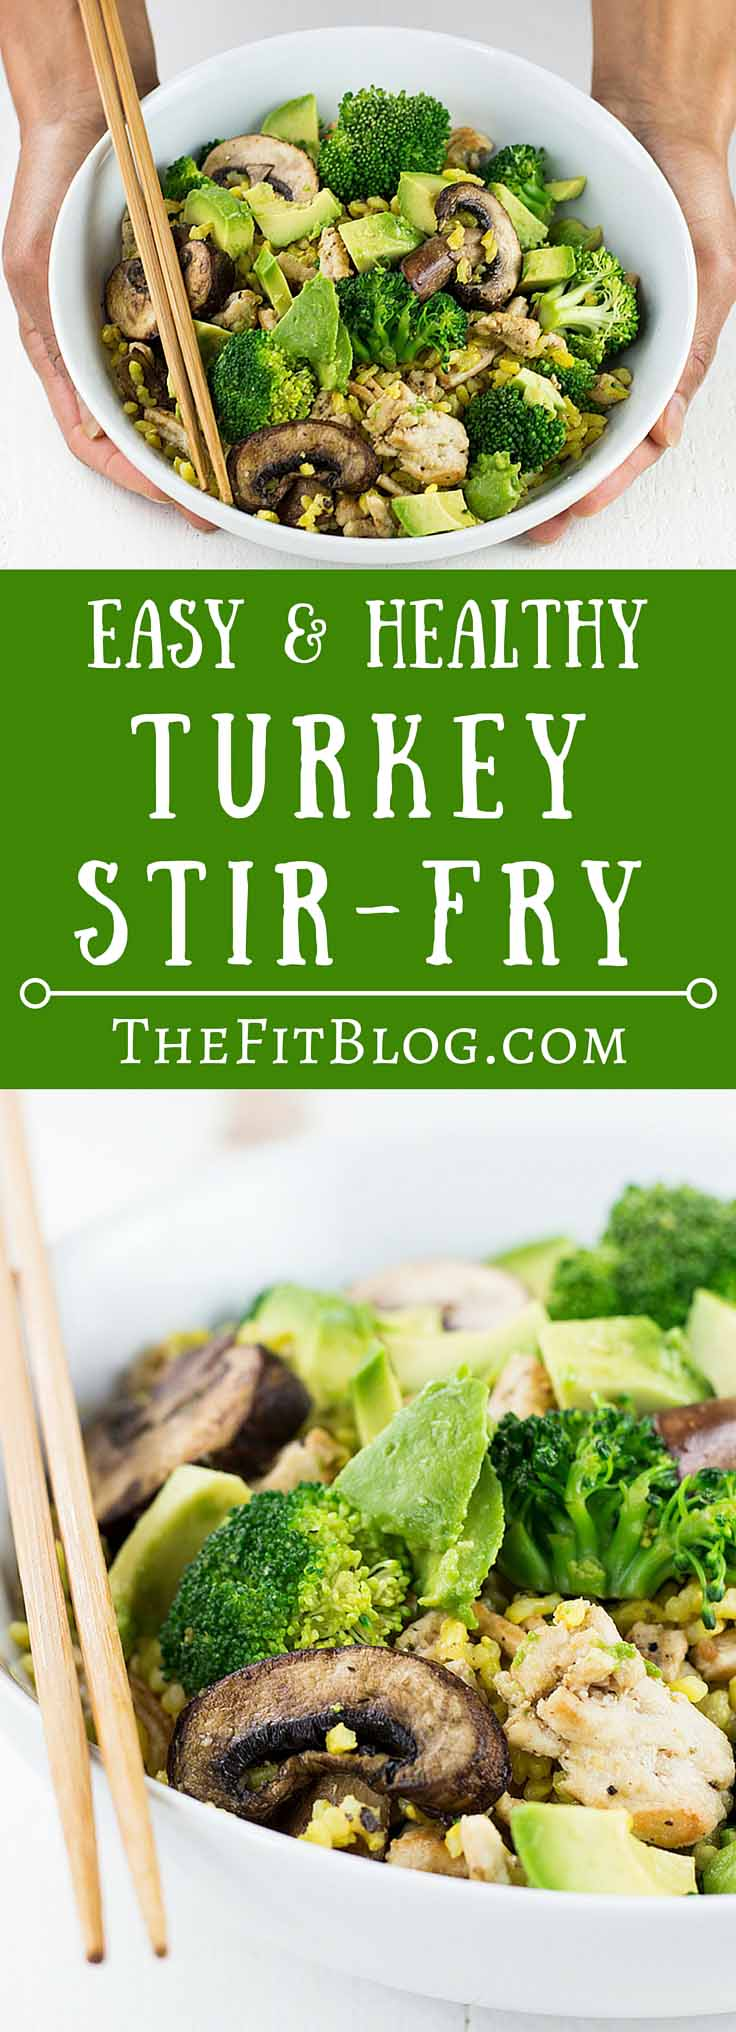 This Healthy Turkey Stir-Fry has the perfect mix of protein, good carbs, and healthy fats for a balanced meal. It also tastes amazing and can be ready in less than 10 min.